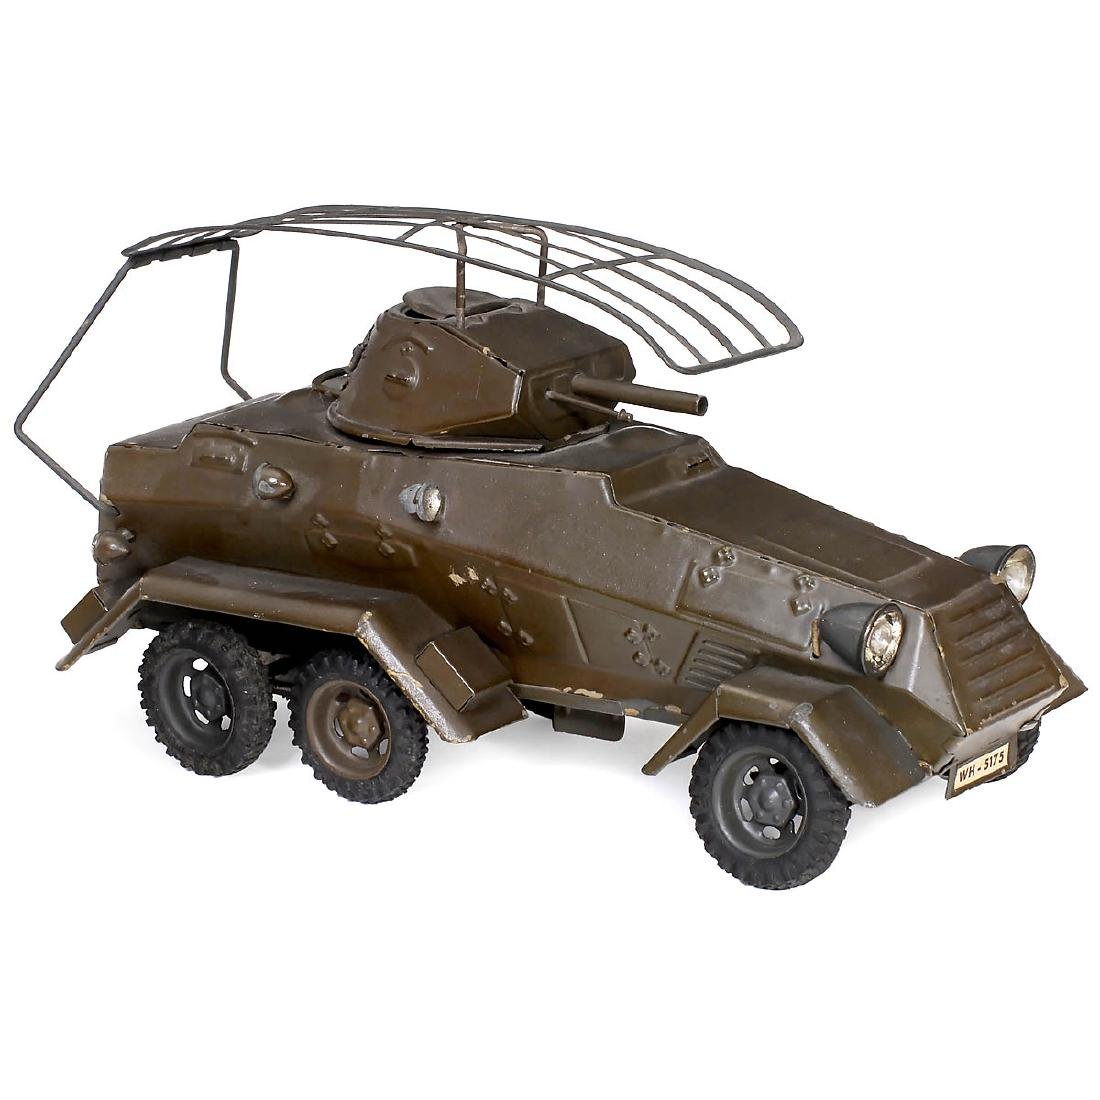 Lineol Armored Scout Car WH-5175, c. 1935